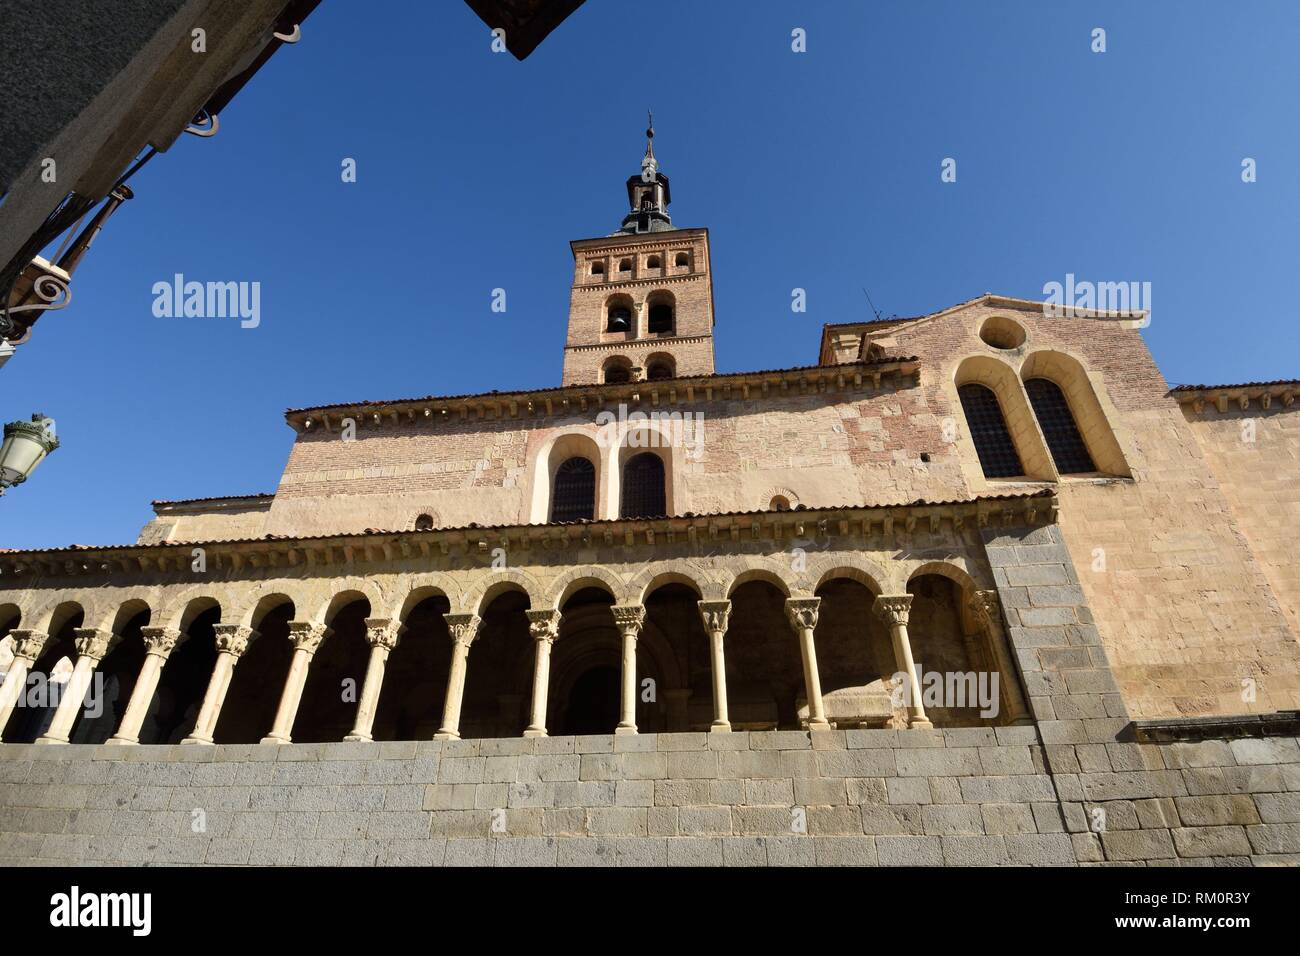 San Martin church, Segovia, Castilla-Leon, Spain. - Stock Image